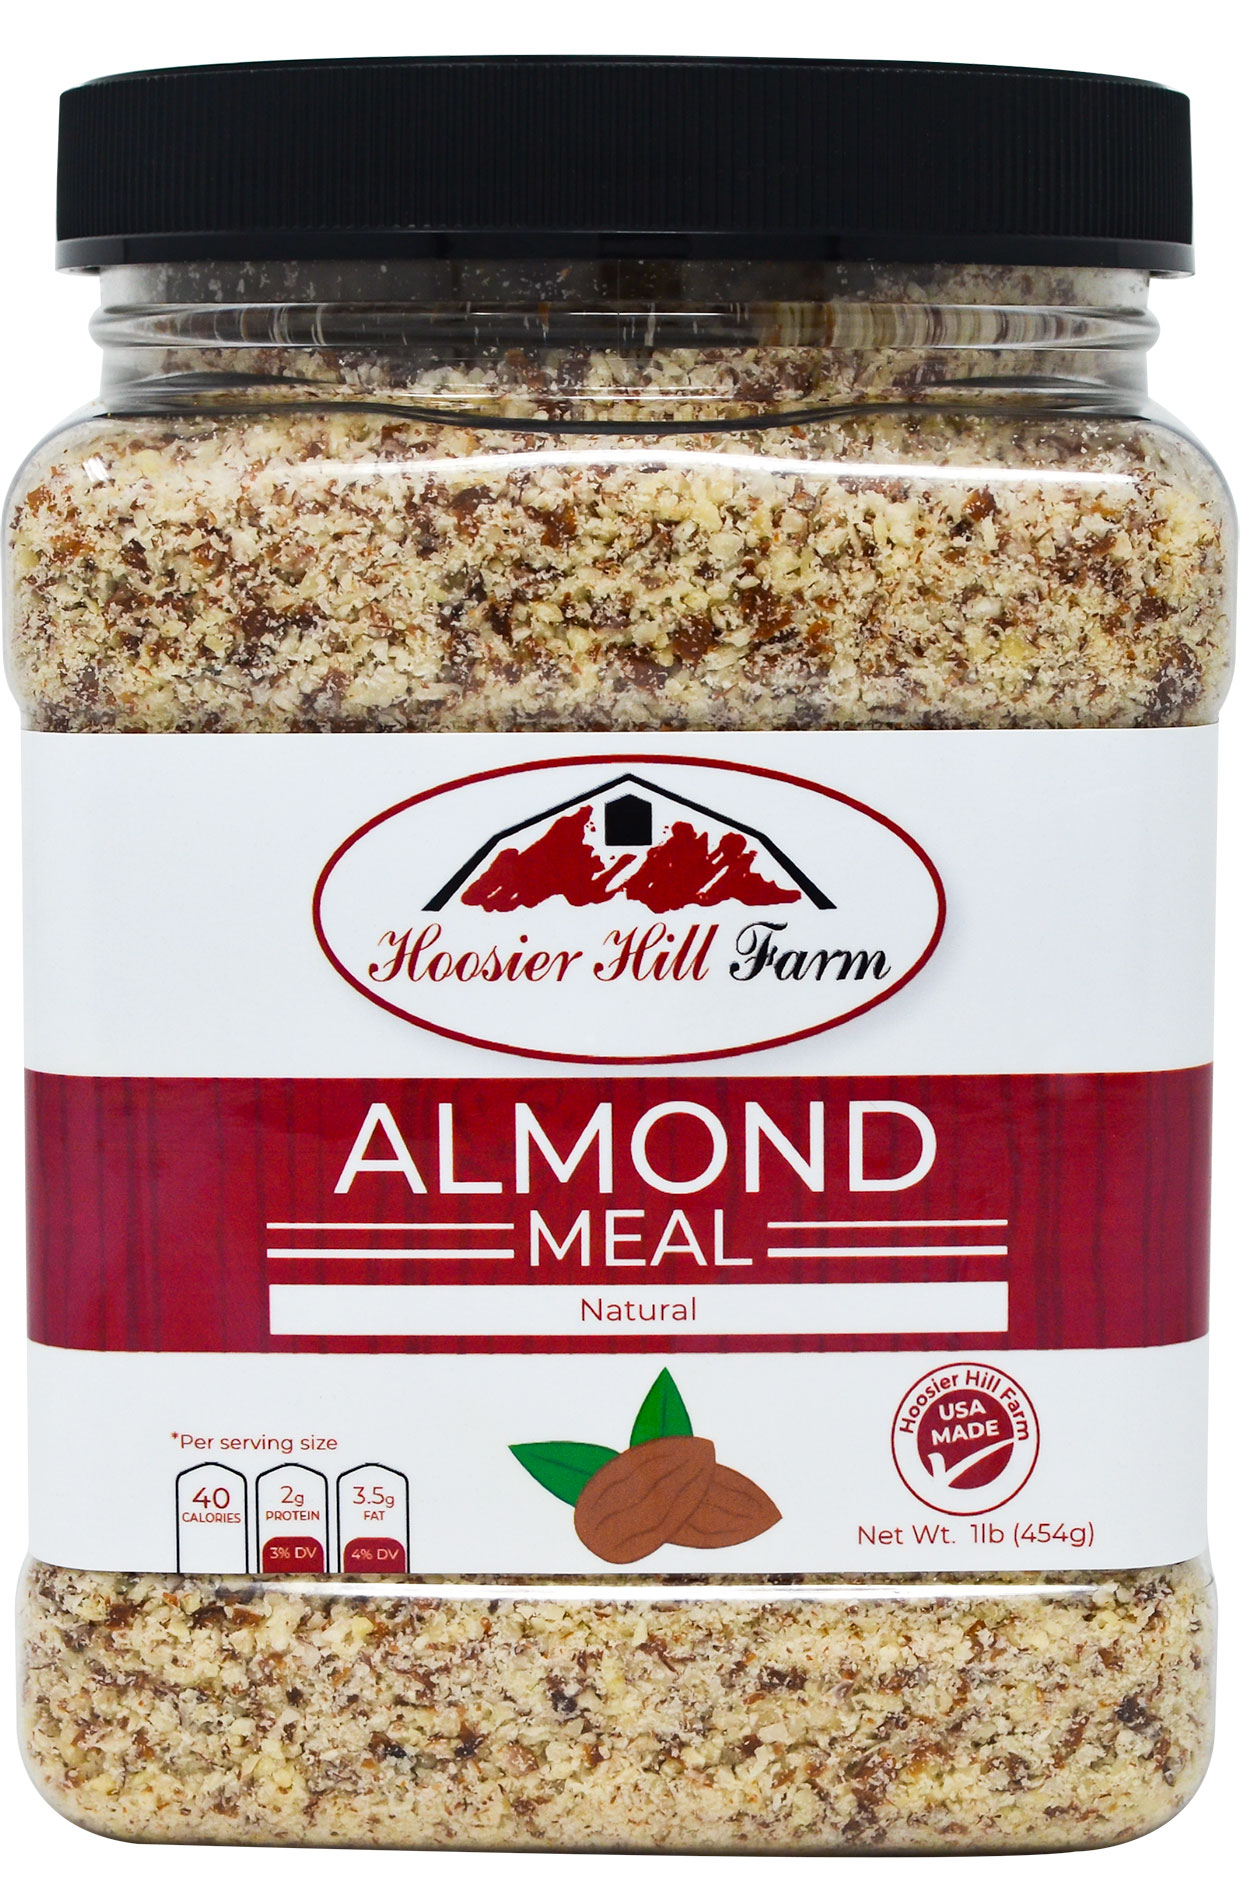 Hoosier Hill Farm Almond Meal Natural 1 lb.